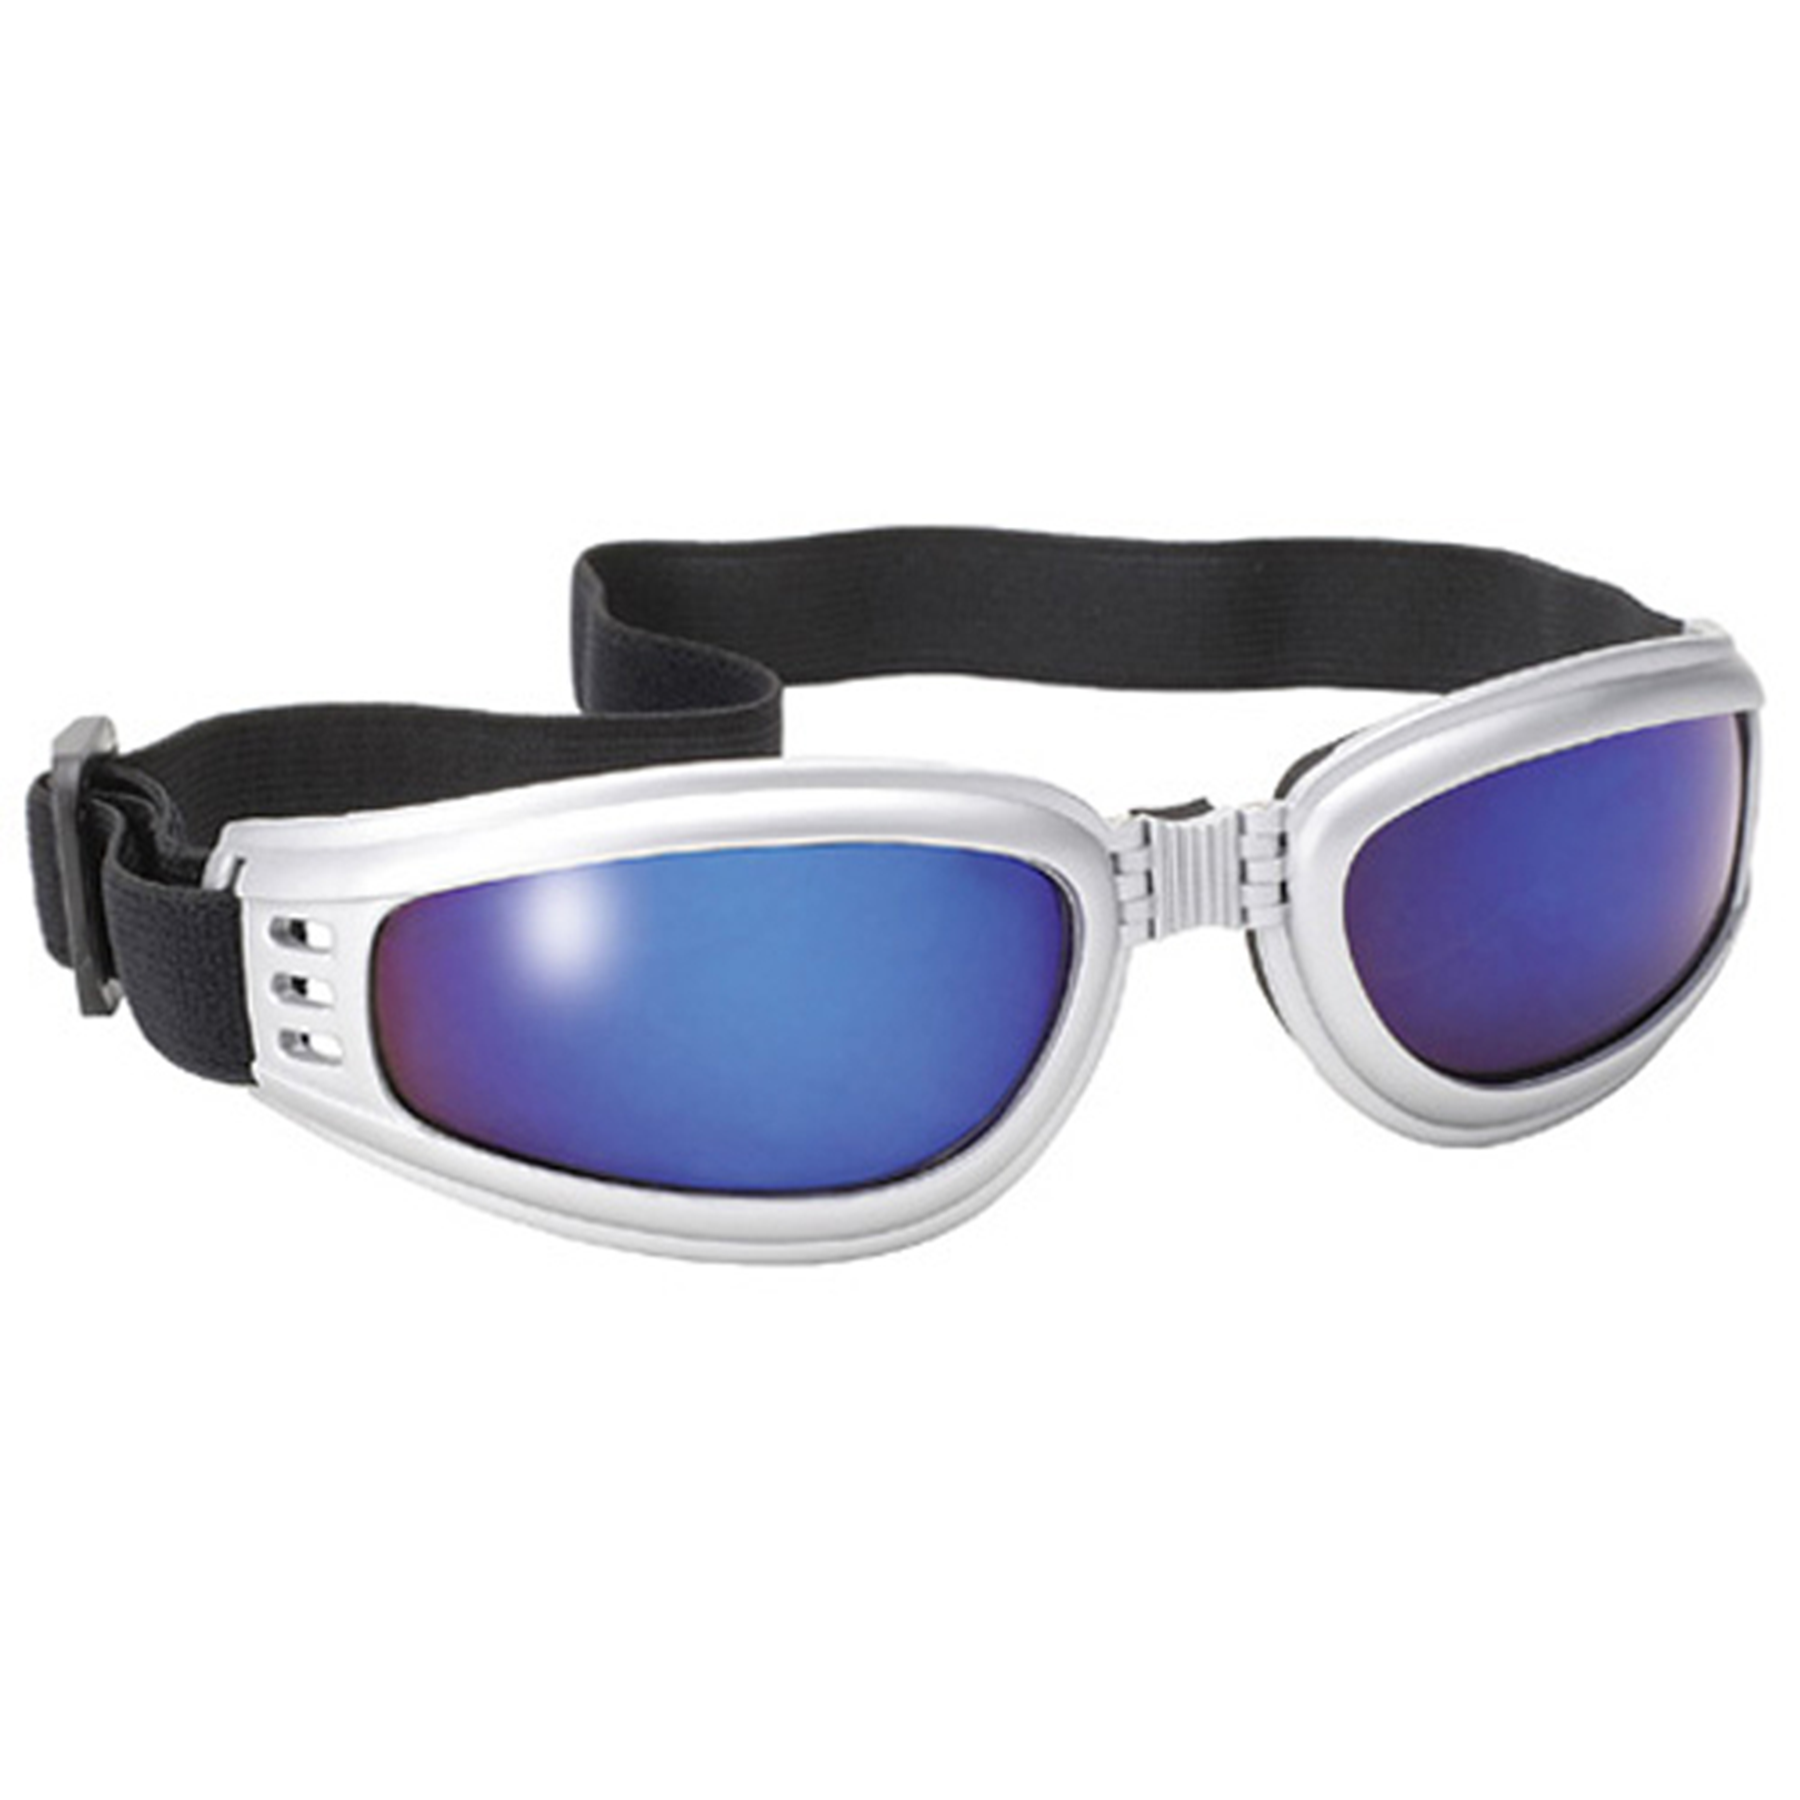 """PACIFIC COAST """"THE BEAST"""" BLACK GOGGLES - CLEAR LENS"""